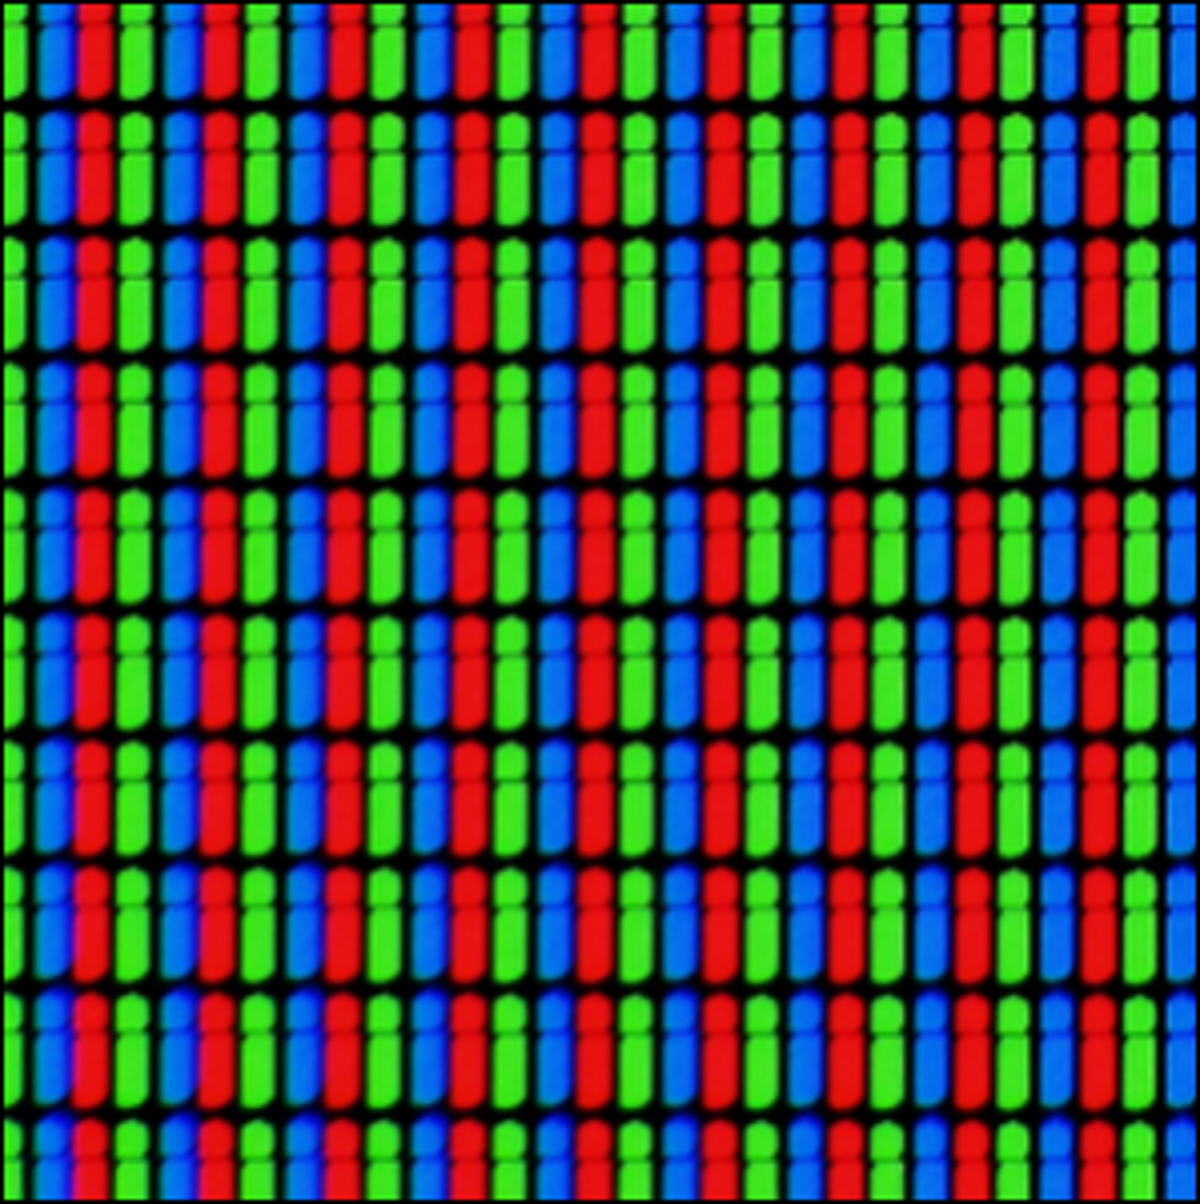 A macro photograph showing the individual pixels on an LCD screen.